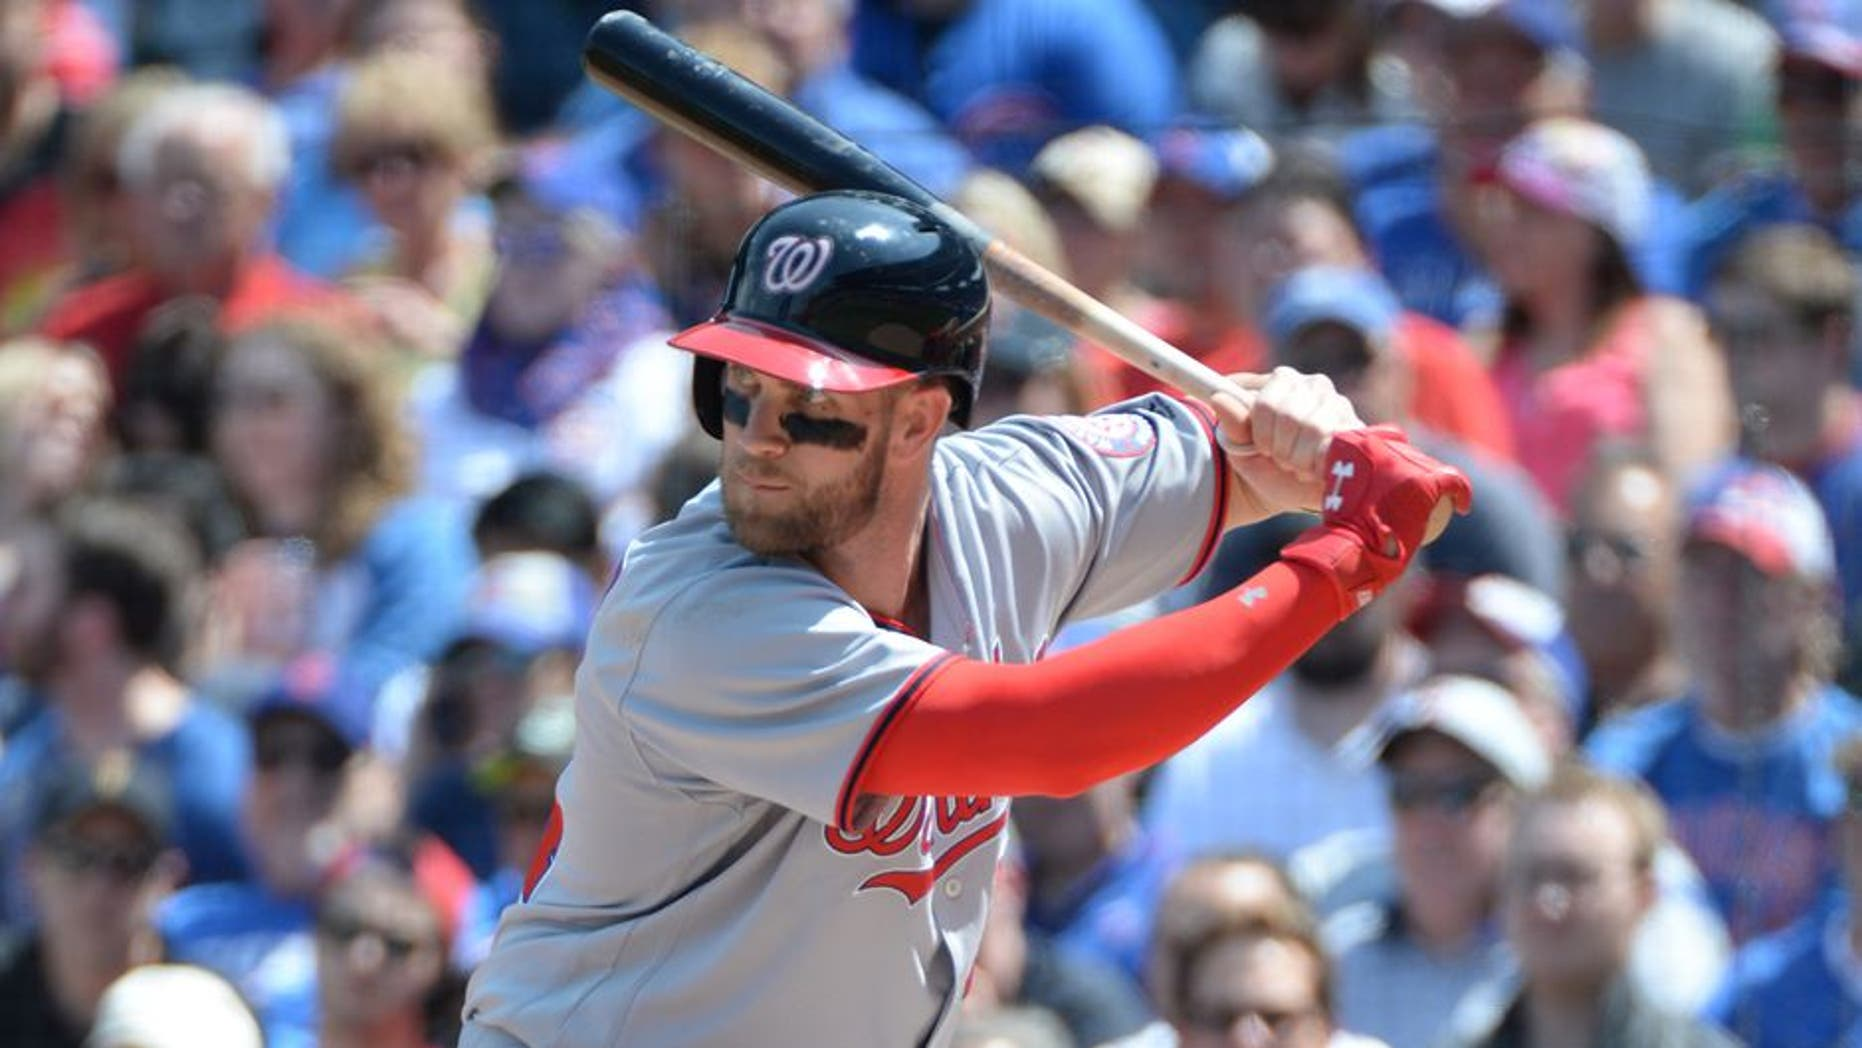 Washington Nationals Bryce Harper (34) during a game against theChicago Cubs on May 6 2016 at Wrigley Field in Chicago, IL. The Cubs beat the Nationals 8-6.(David Durochik via AP)